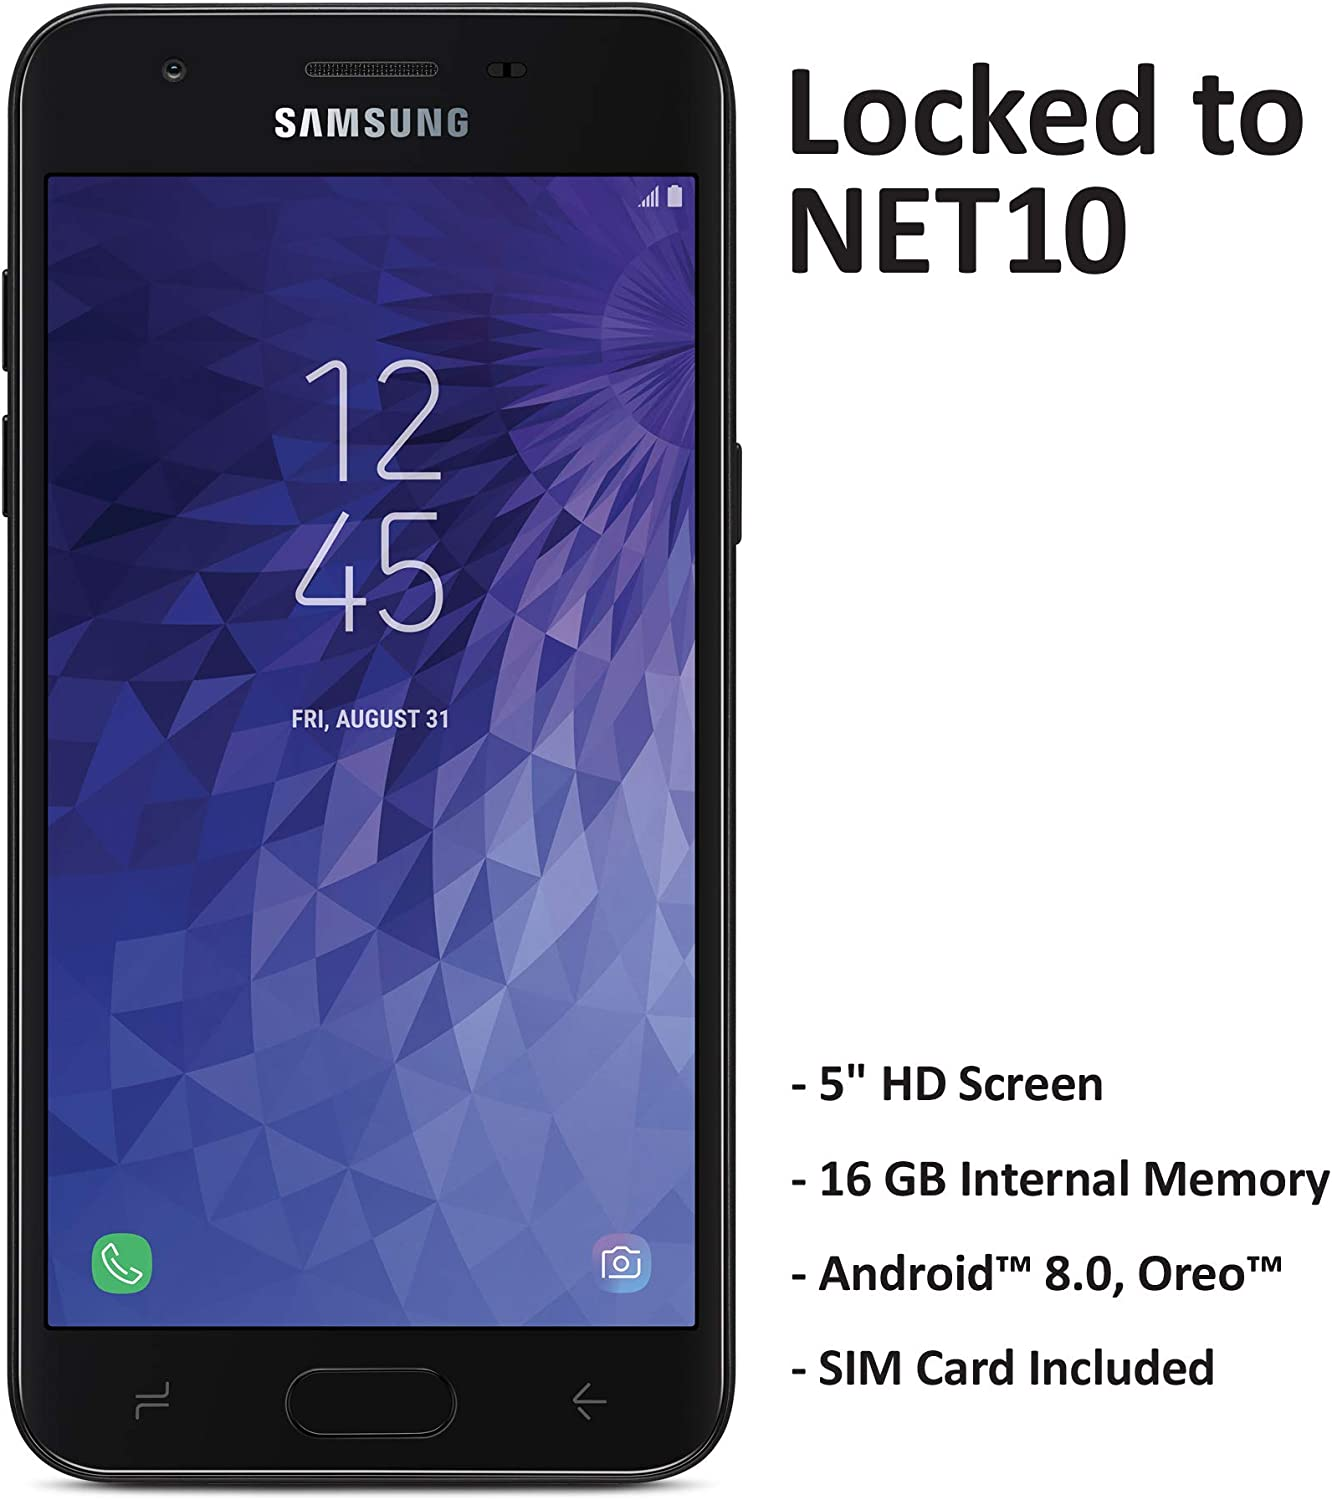 Net10 Carrier-Locked Samsung Galaxy J3 Orbit 4G LTE Prepaid Smartphone - Black - 16GB - Sim Card Included - CDMA